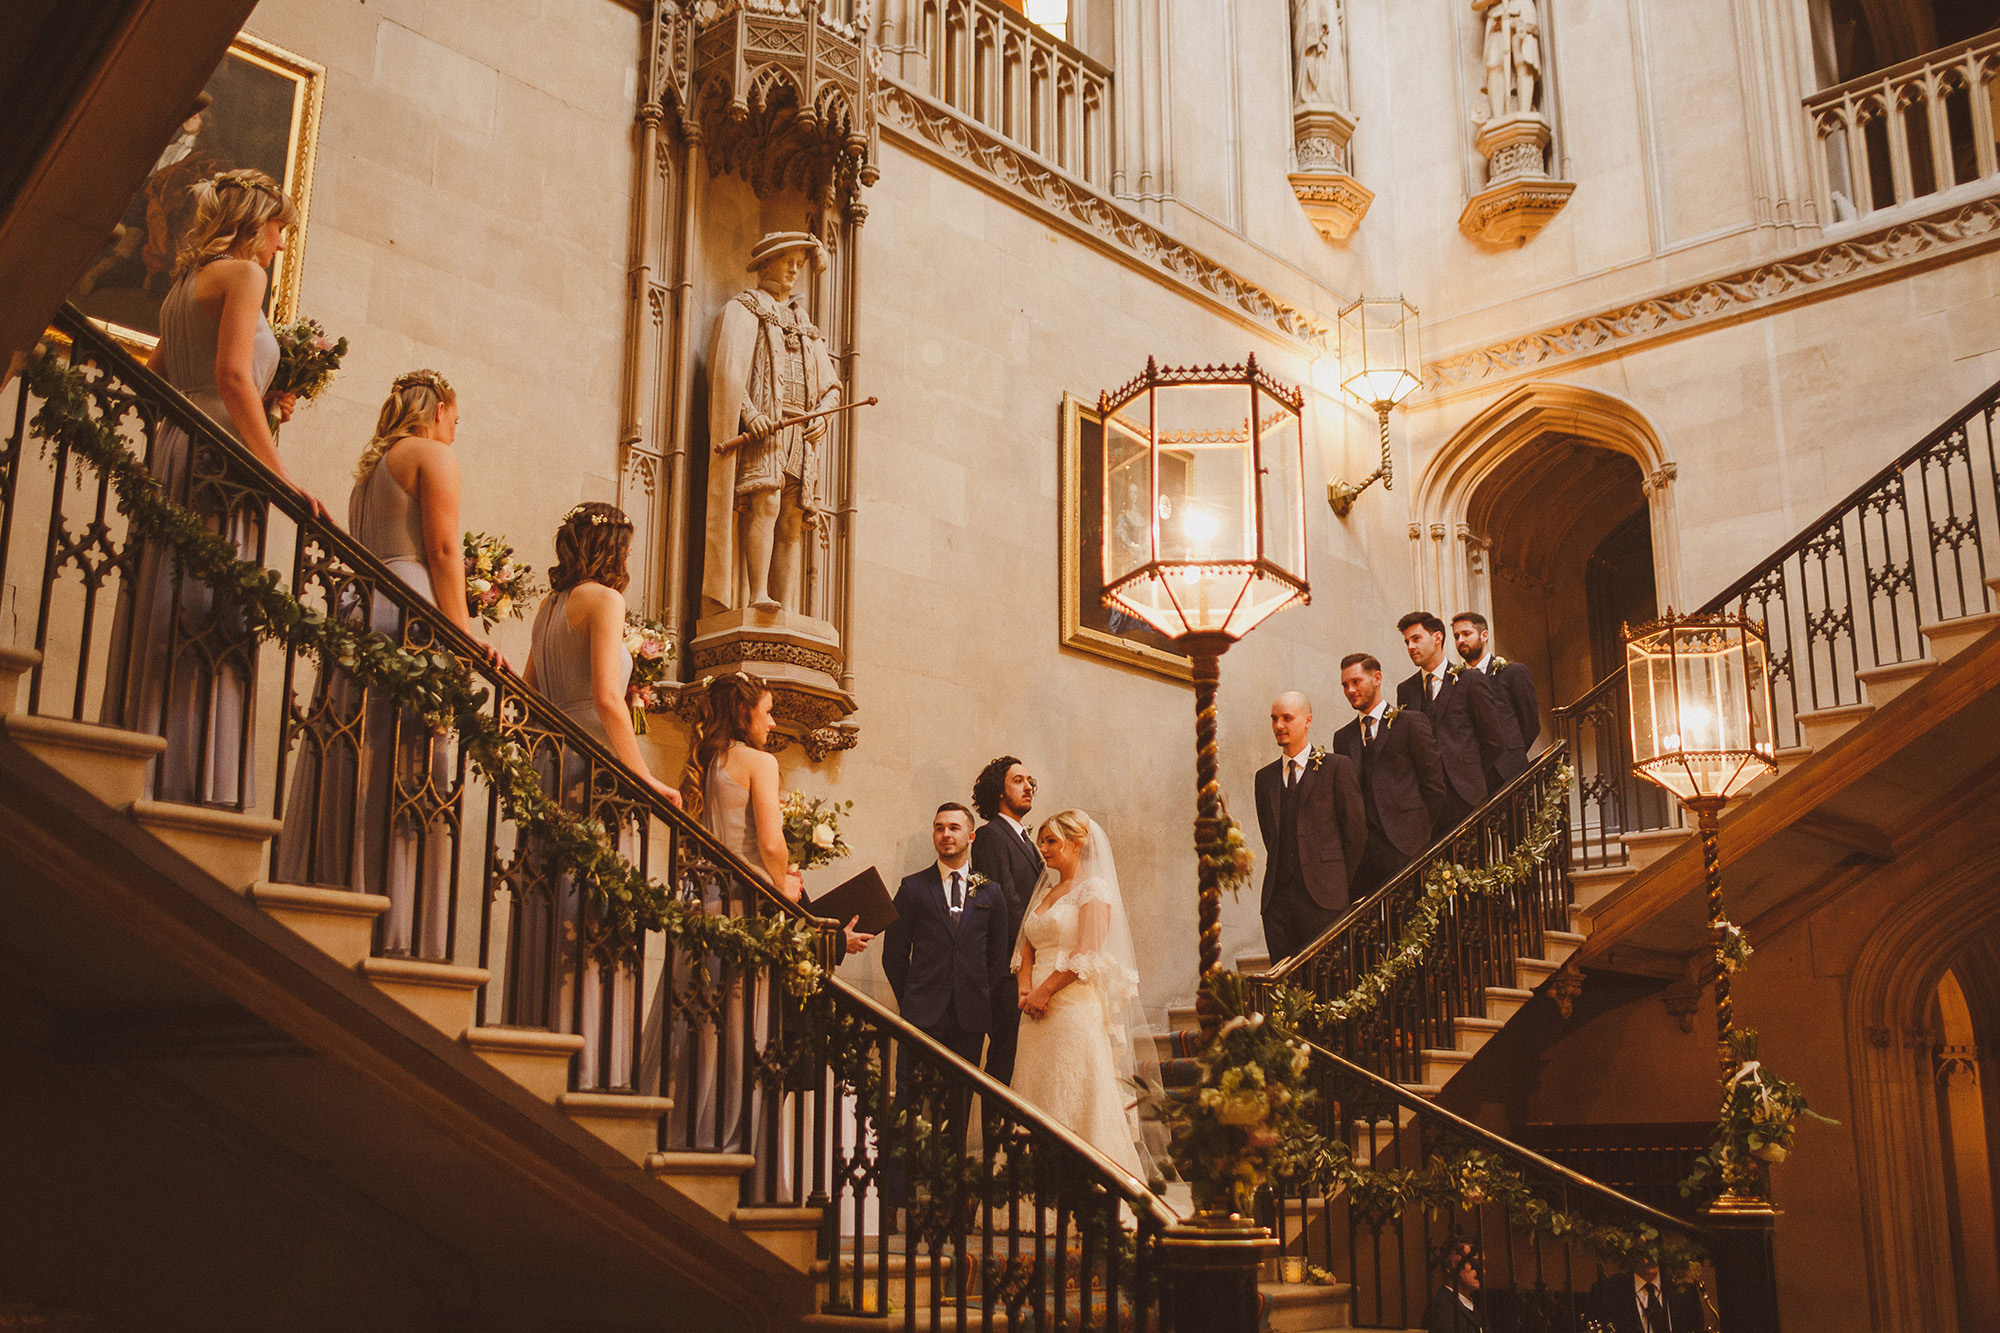 Ashridge House wedding ceremony on grand staircase - photo by Ed Peers Photography